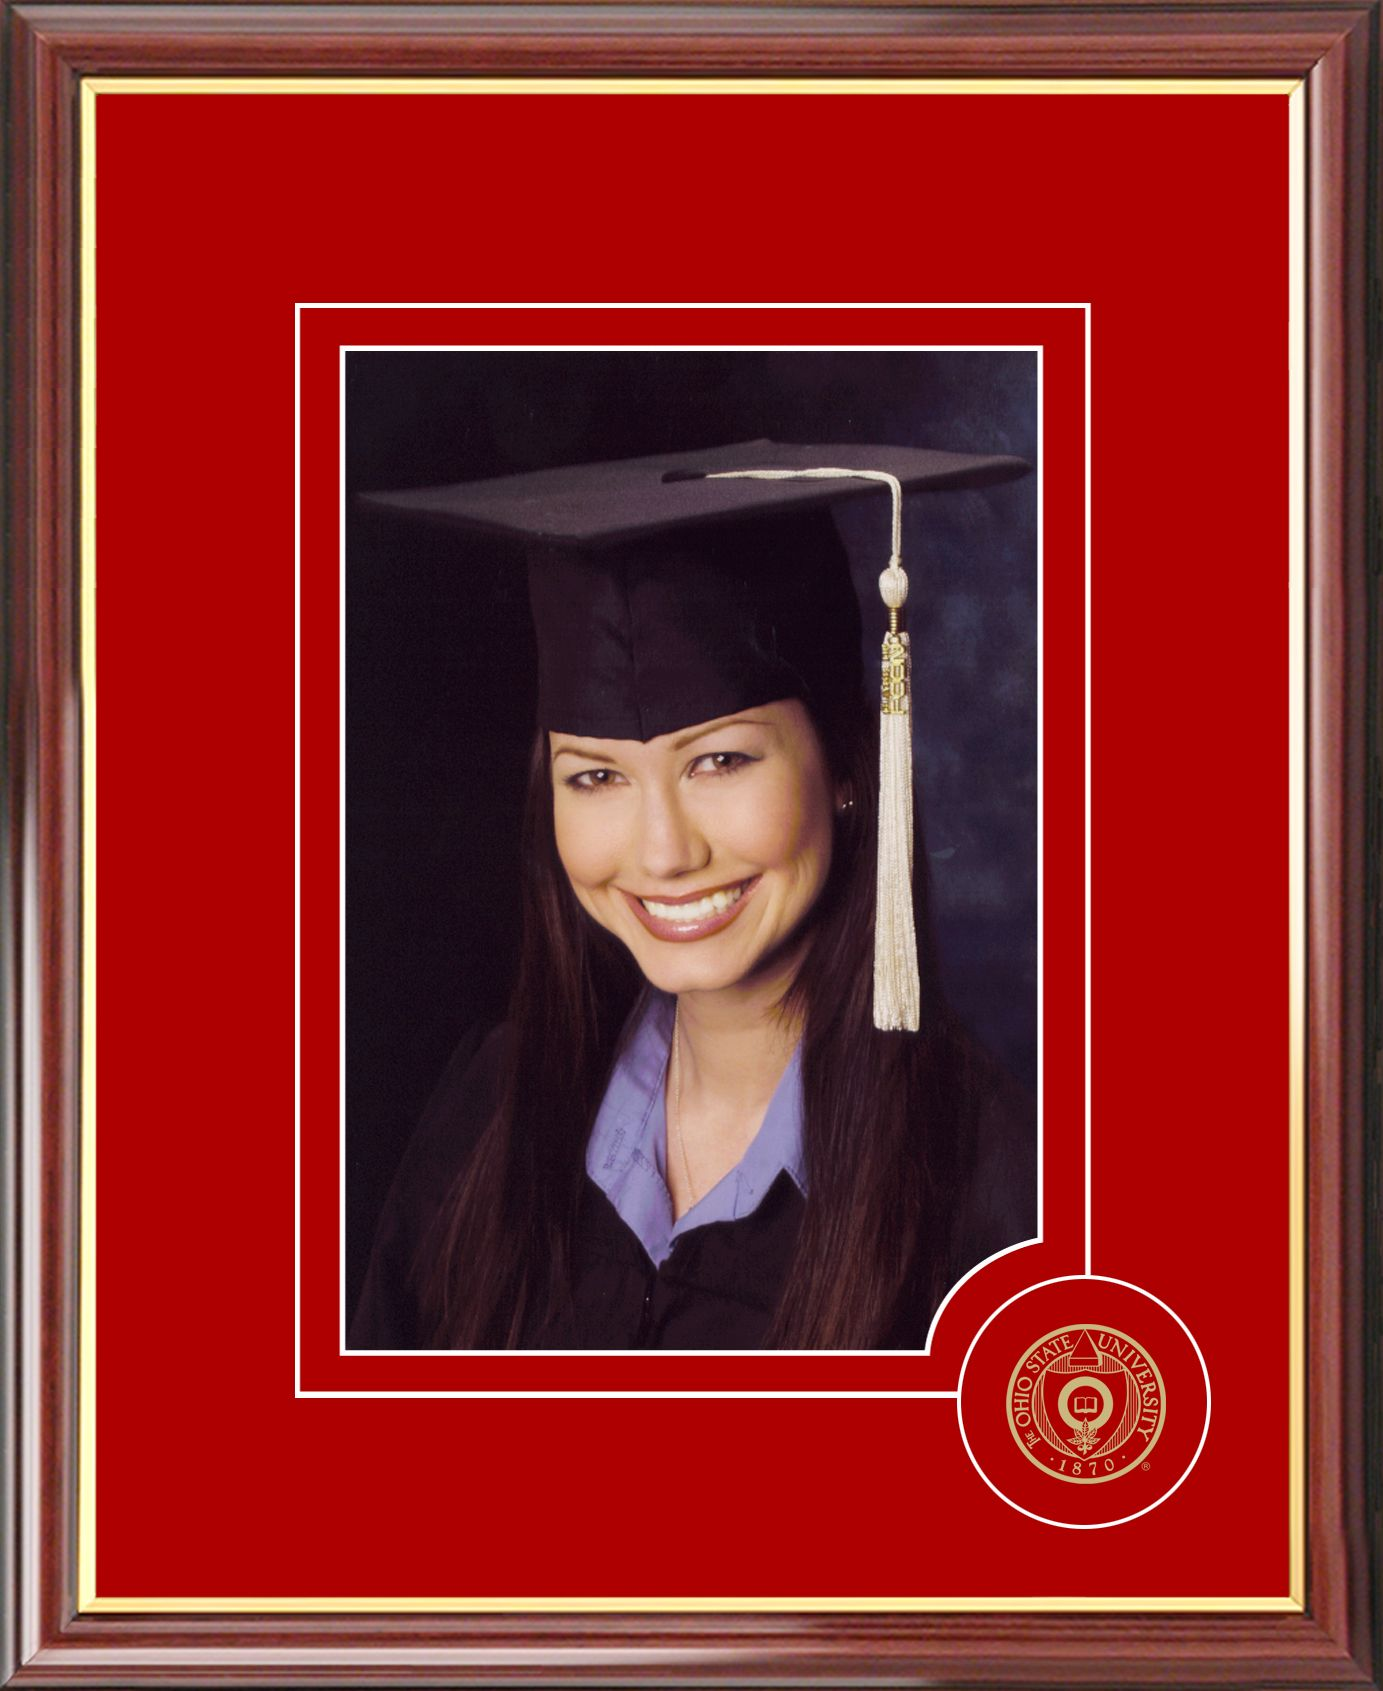 Ohio State University 5X7 Graduate Portrait Frame